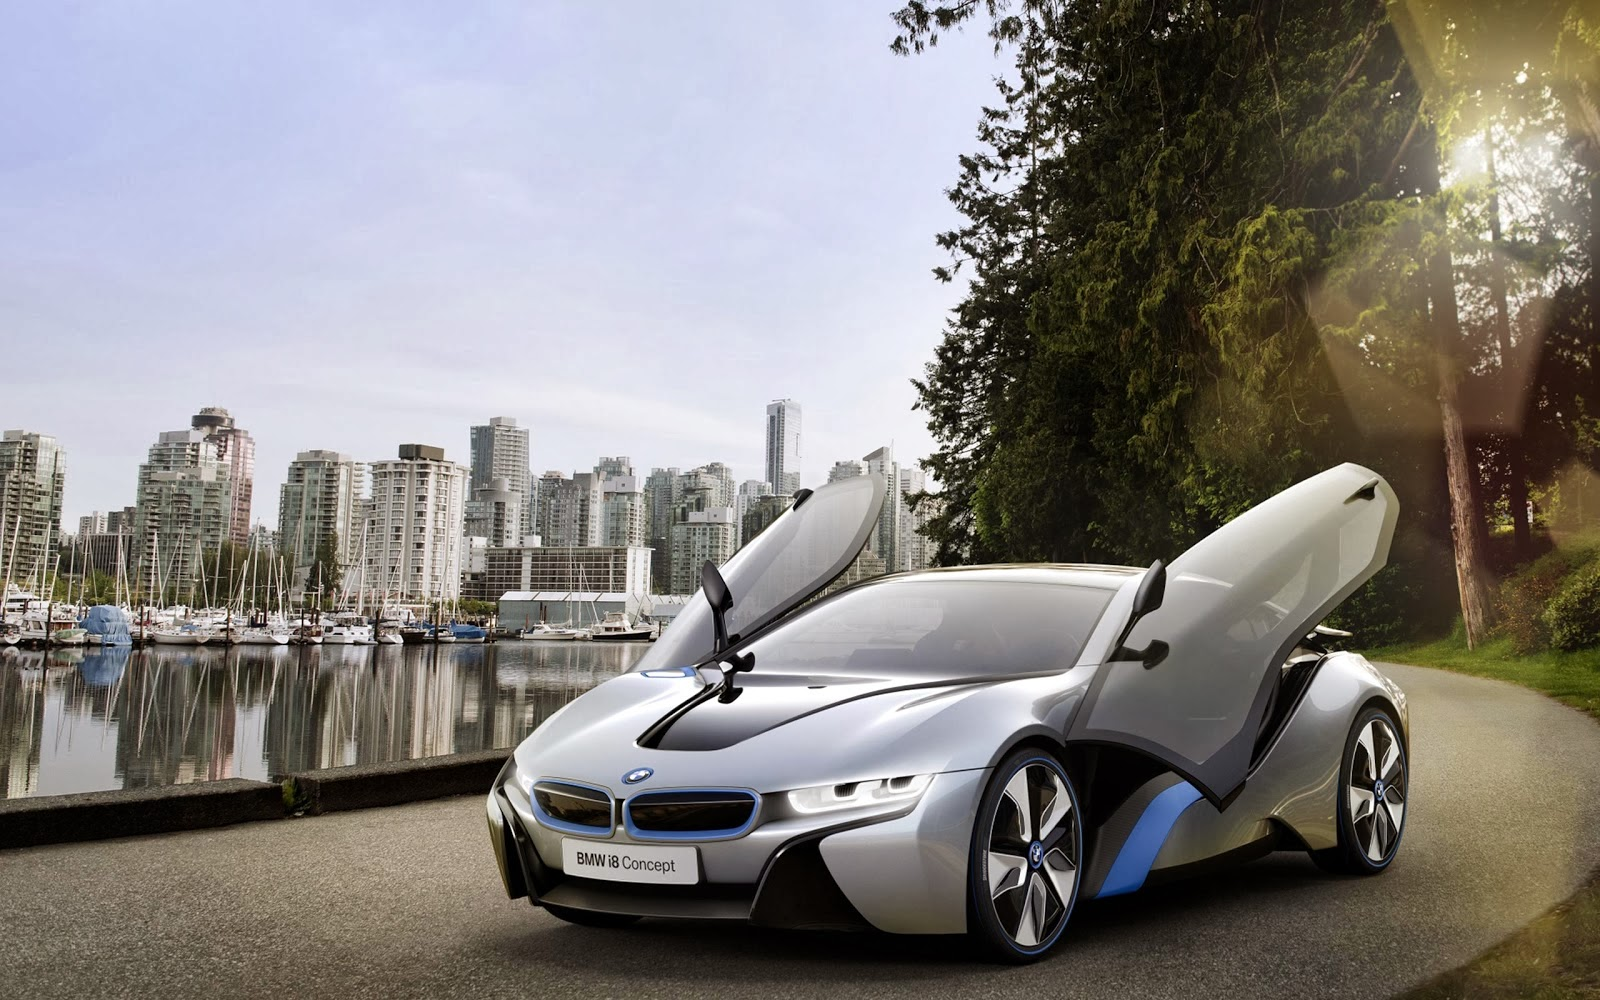 BMW I8 Cars HD Wallpapers 1080p